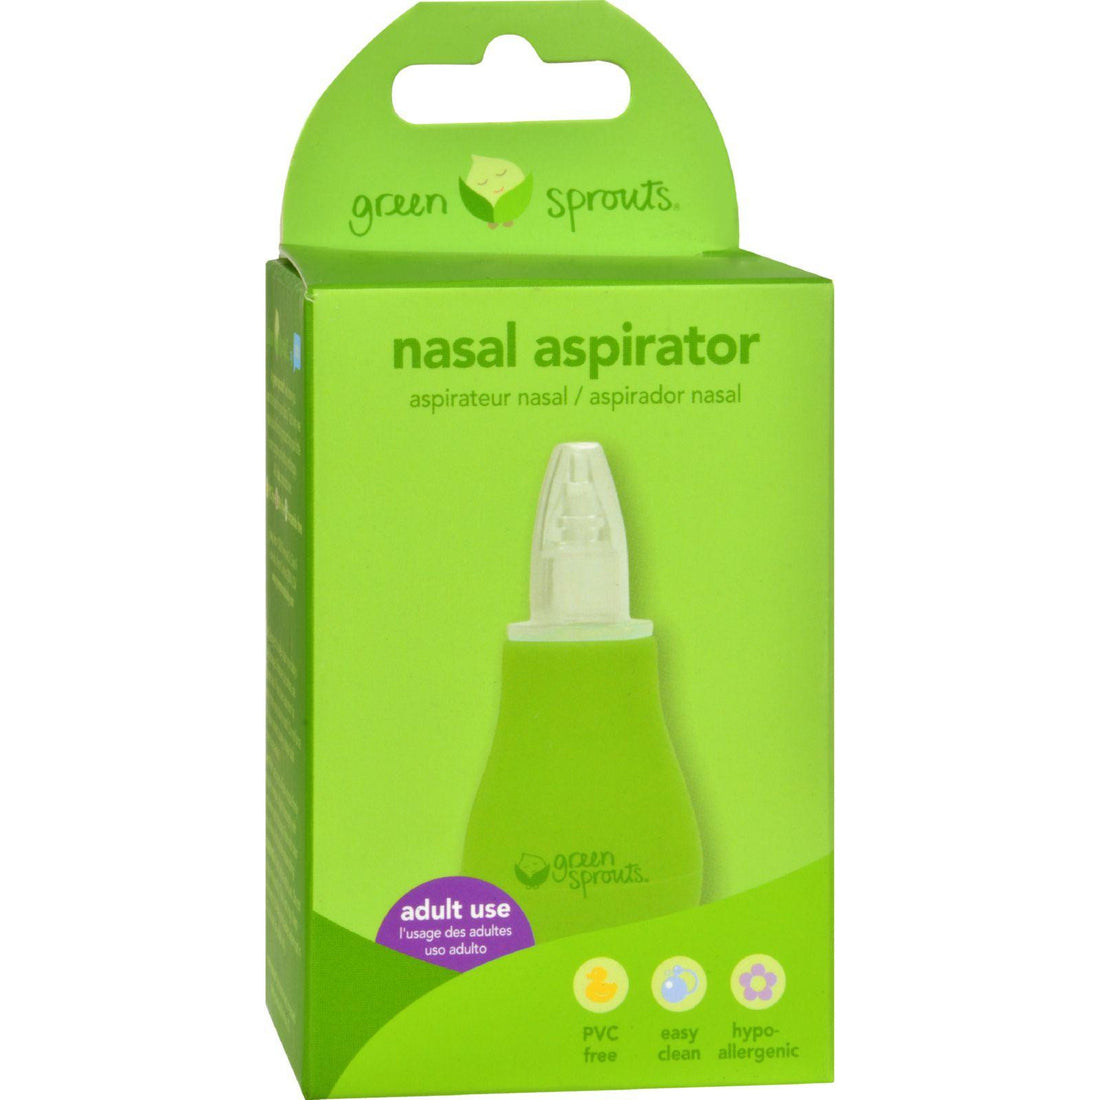 Mother Mantis: Green Sprouts Nasal Aspirator Green Sprouts